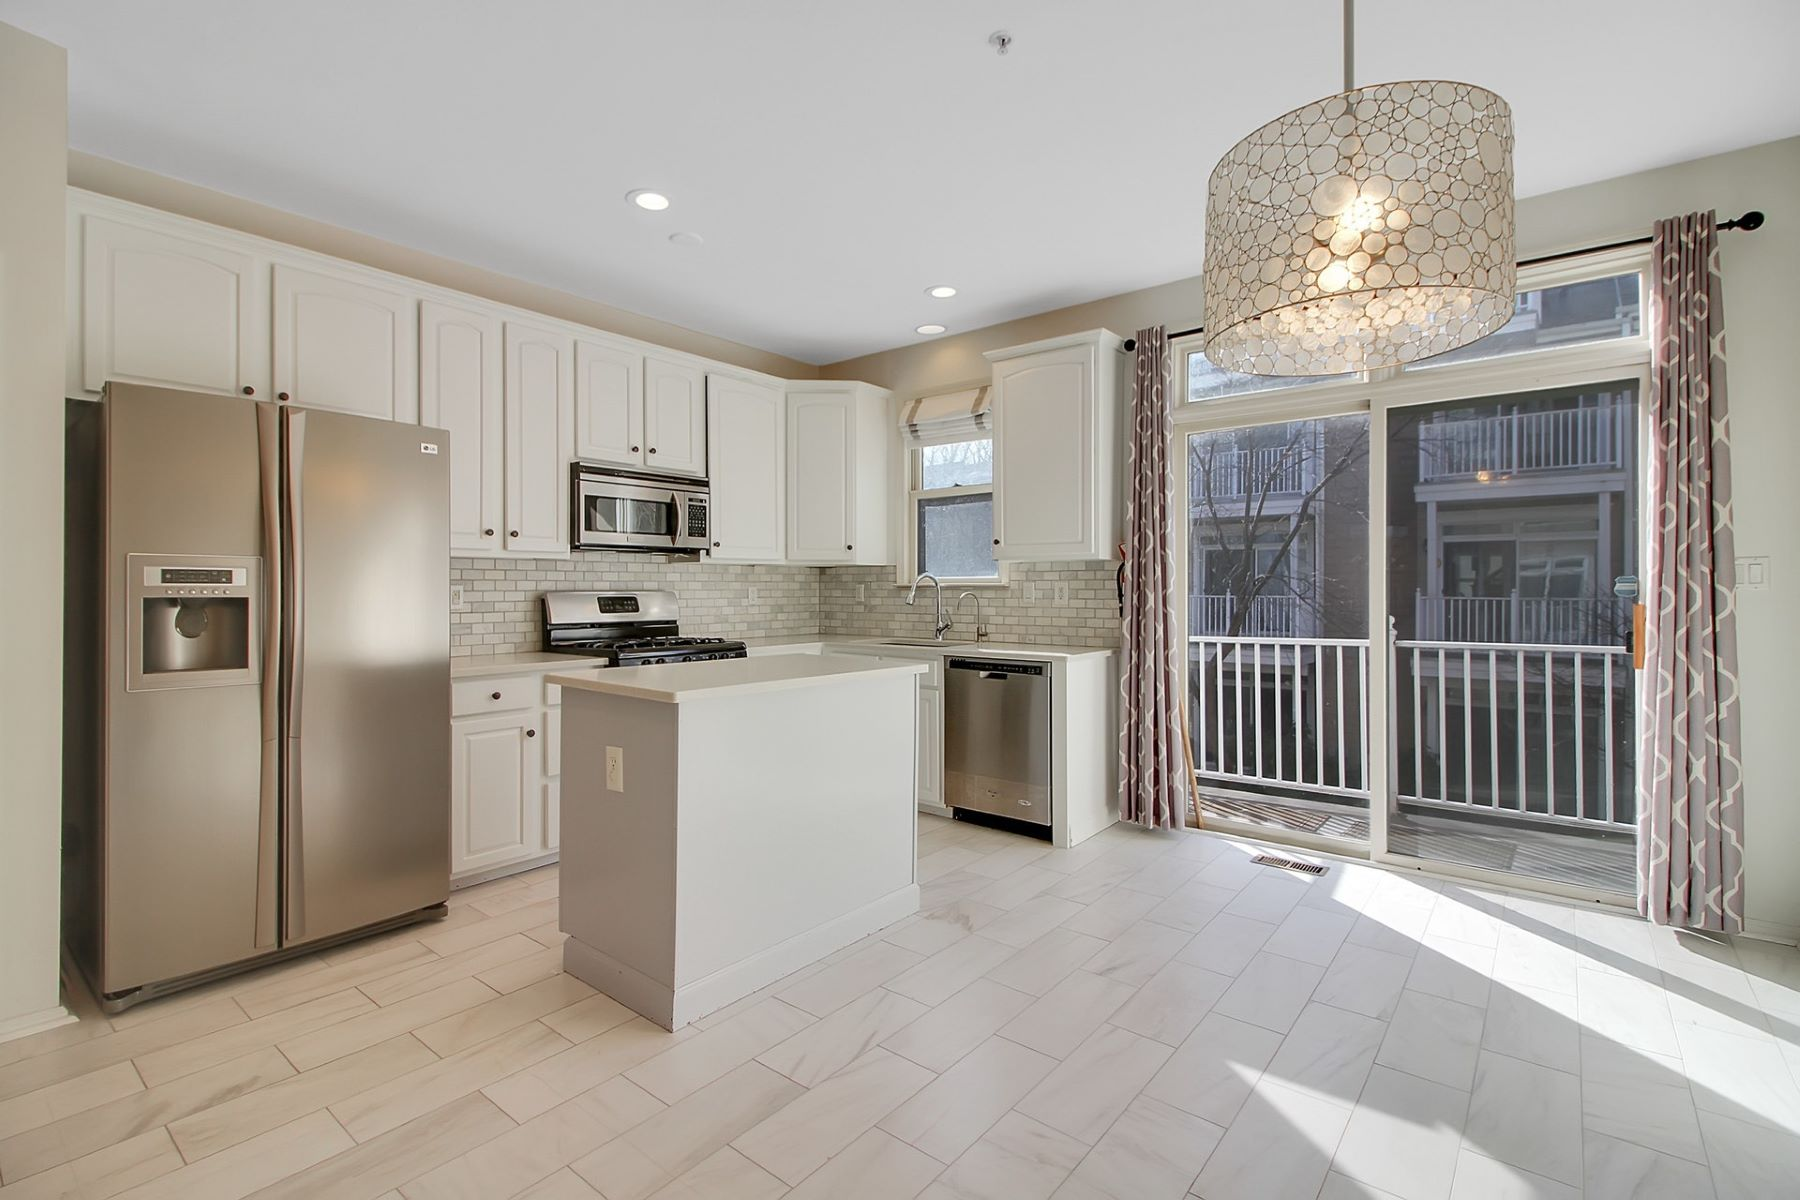 Apartment for Rent at Discover pure luxury in this beautifully renovated 4 bed 4.5 bath Townhouse 236 Price Ct, West New York, New Jersey 07093 United States